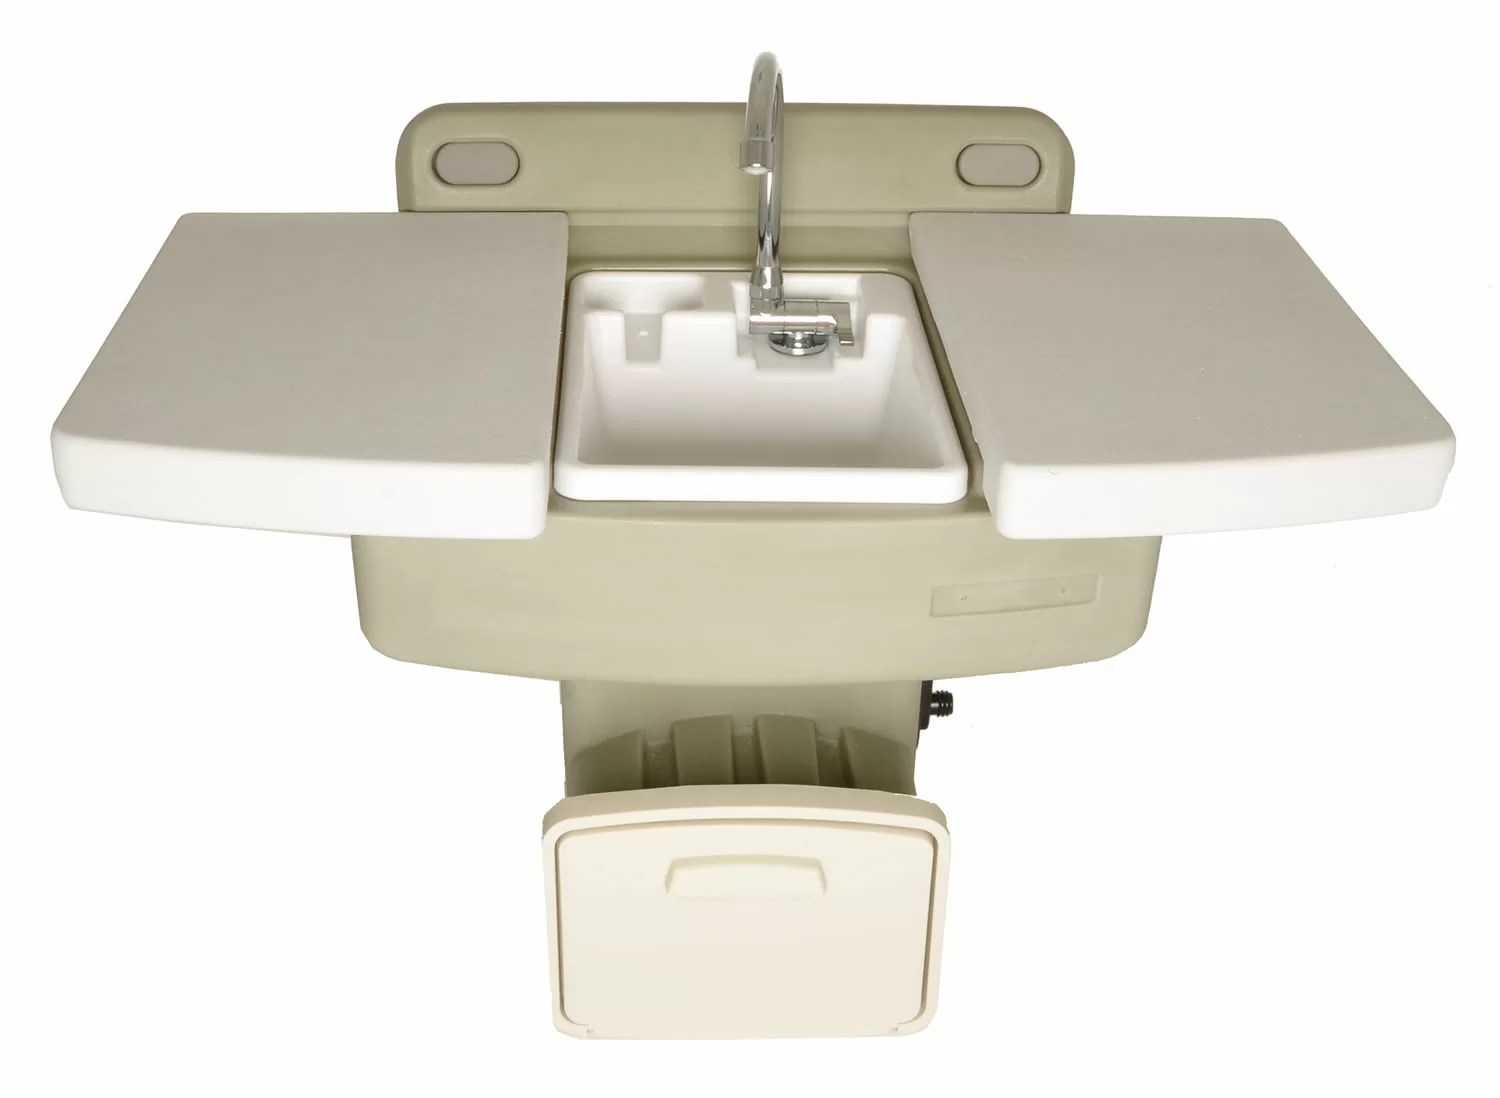 garden utility planting station outdoor sink with hose hanger